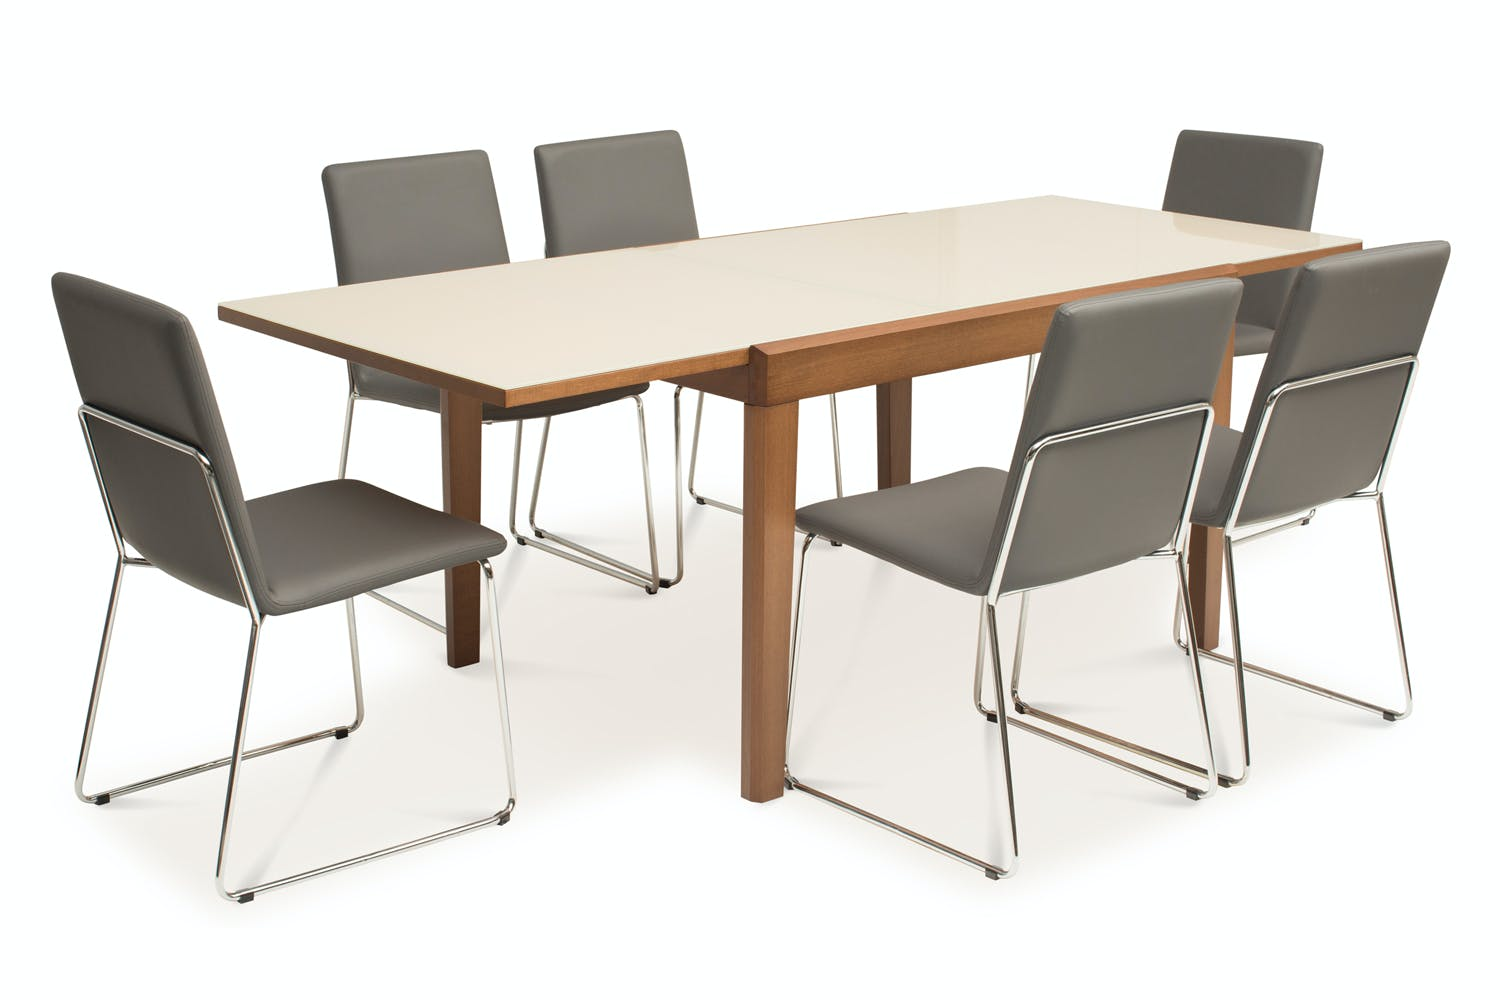 Asso dining table with 6 luna chairs grey ireland for Dining table and 6 chairs